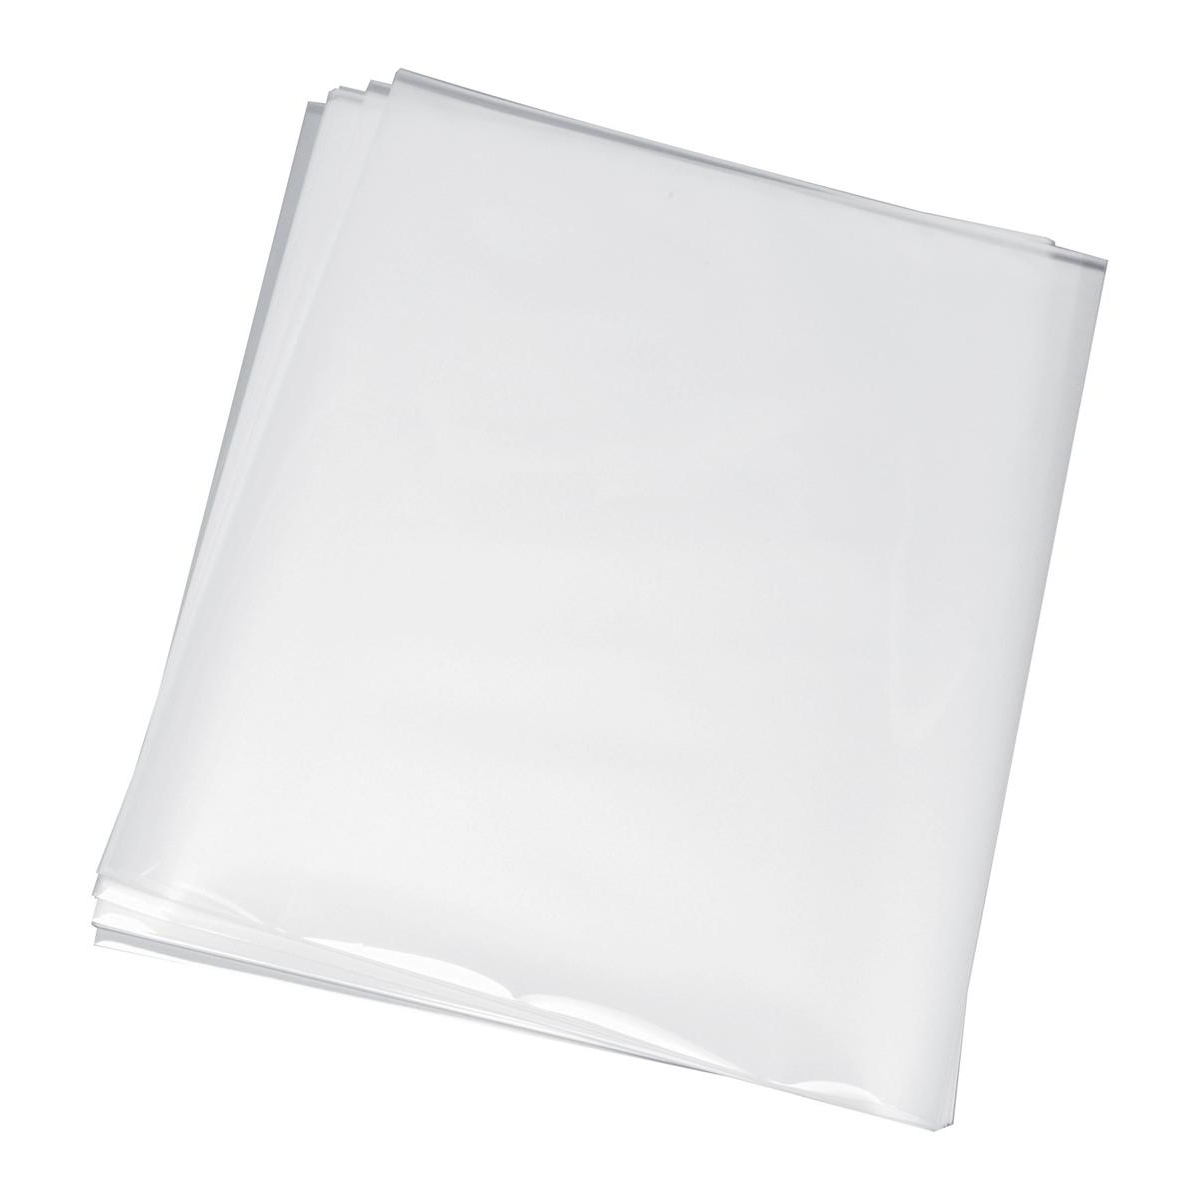 Laminating Film & Pockets 5 Star Office Laminating Pouches 150 micron for A4 Matt Pack 100